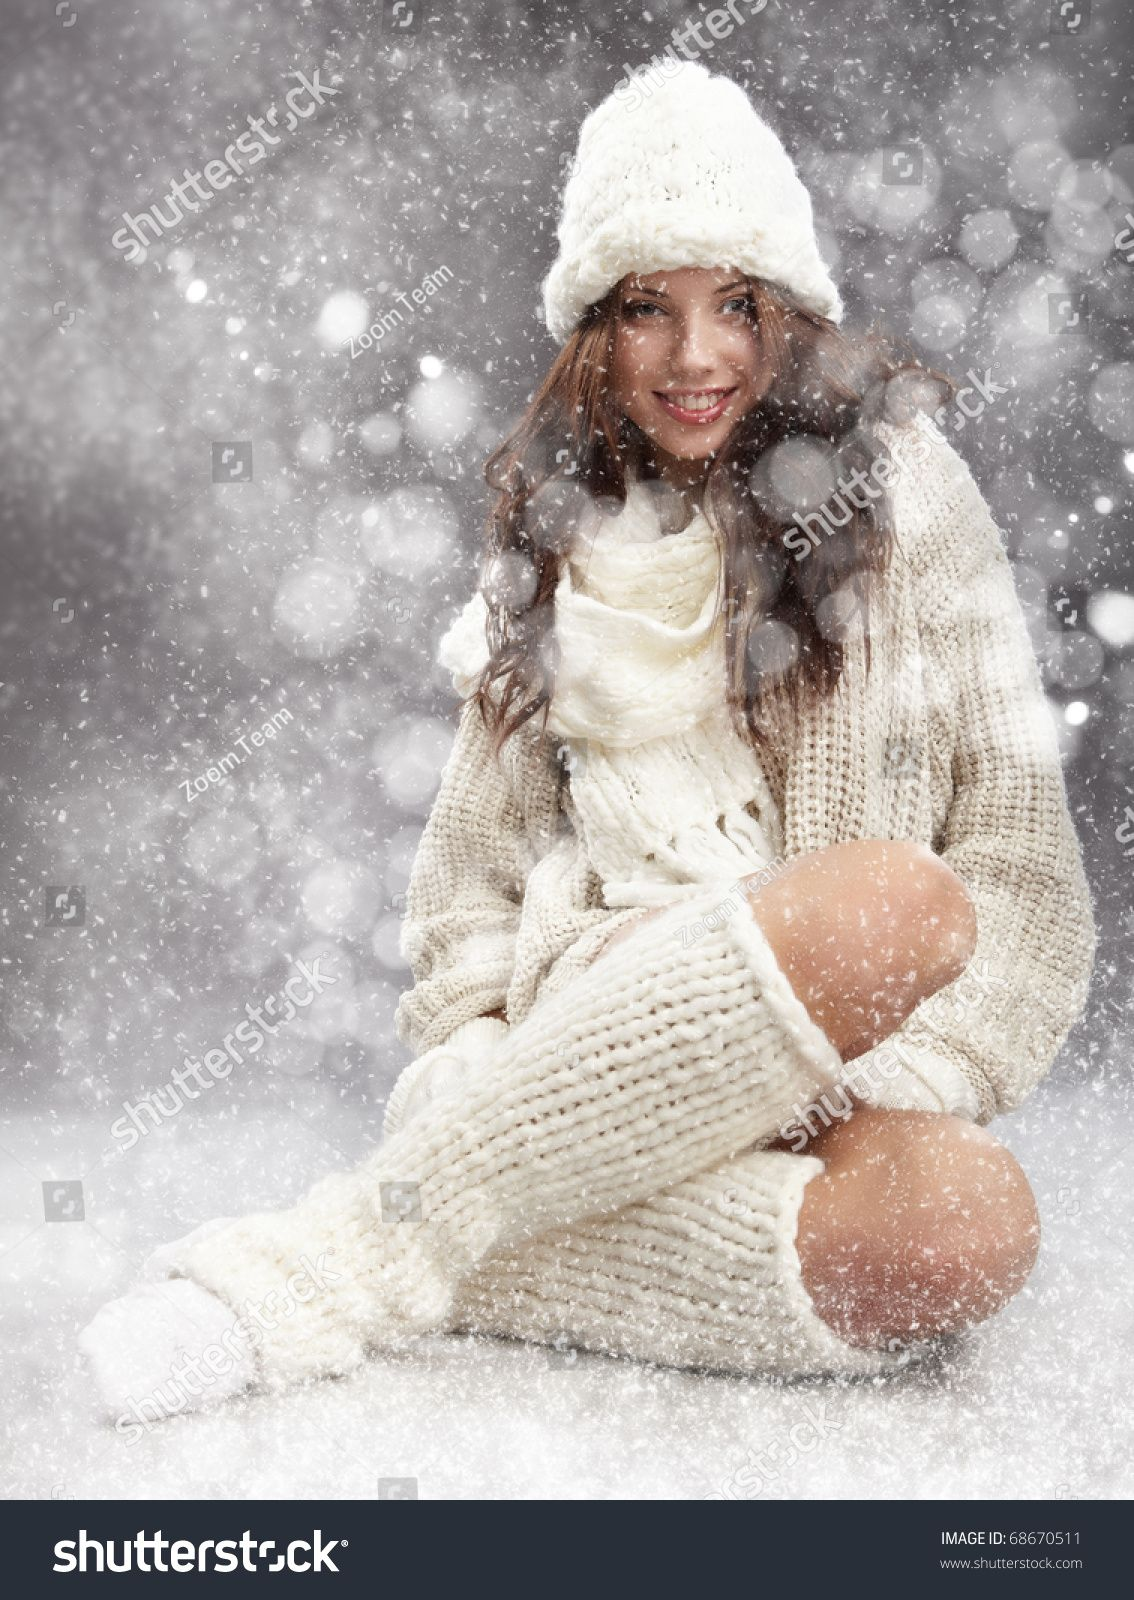 Winter woman on snow #Sponsored , #Affiliate, #Winter#woman#snow